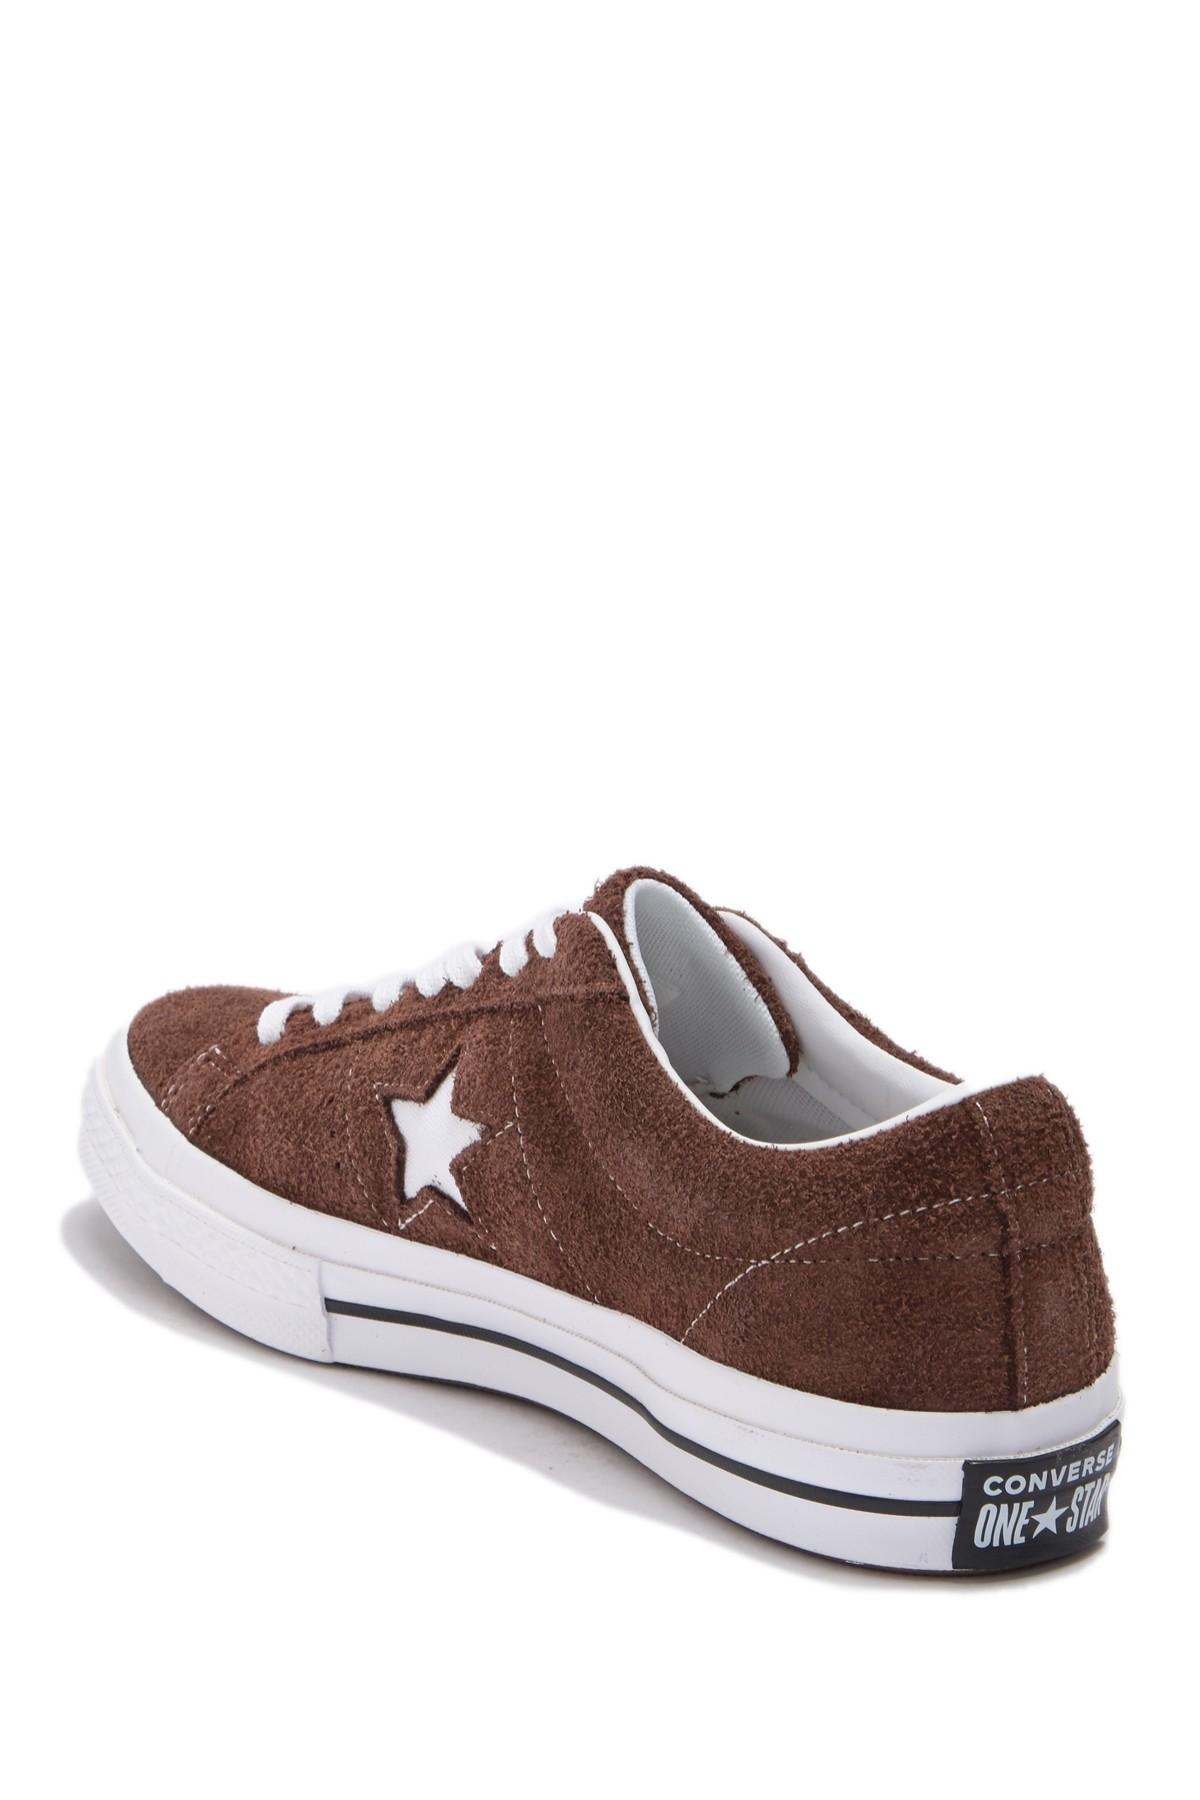 Converse One Star Oxford Suede Sneaker (unisex) in Chocolate/White ...